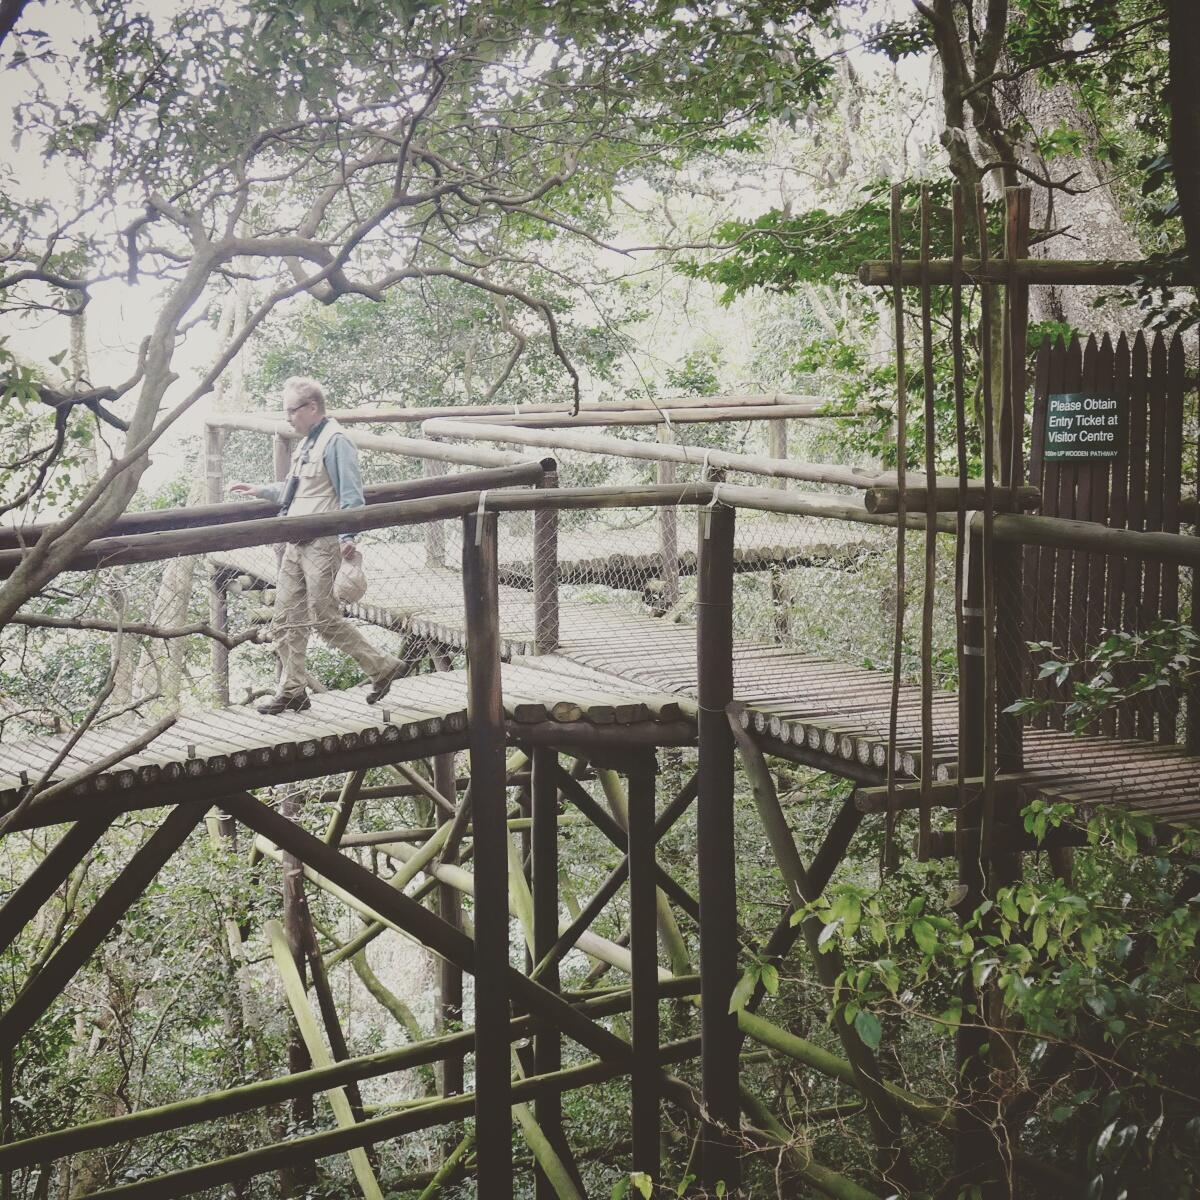 An aerial boardwalk leads into the forest canopy at the Dlinza Forest. Noah Strycker